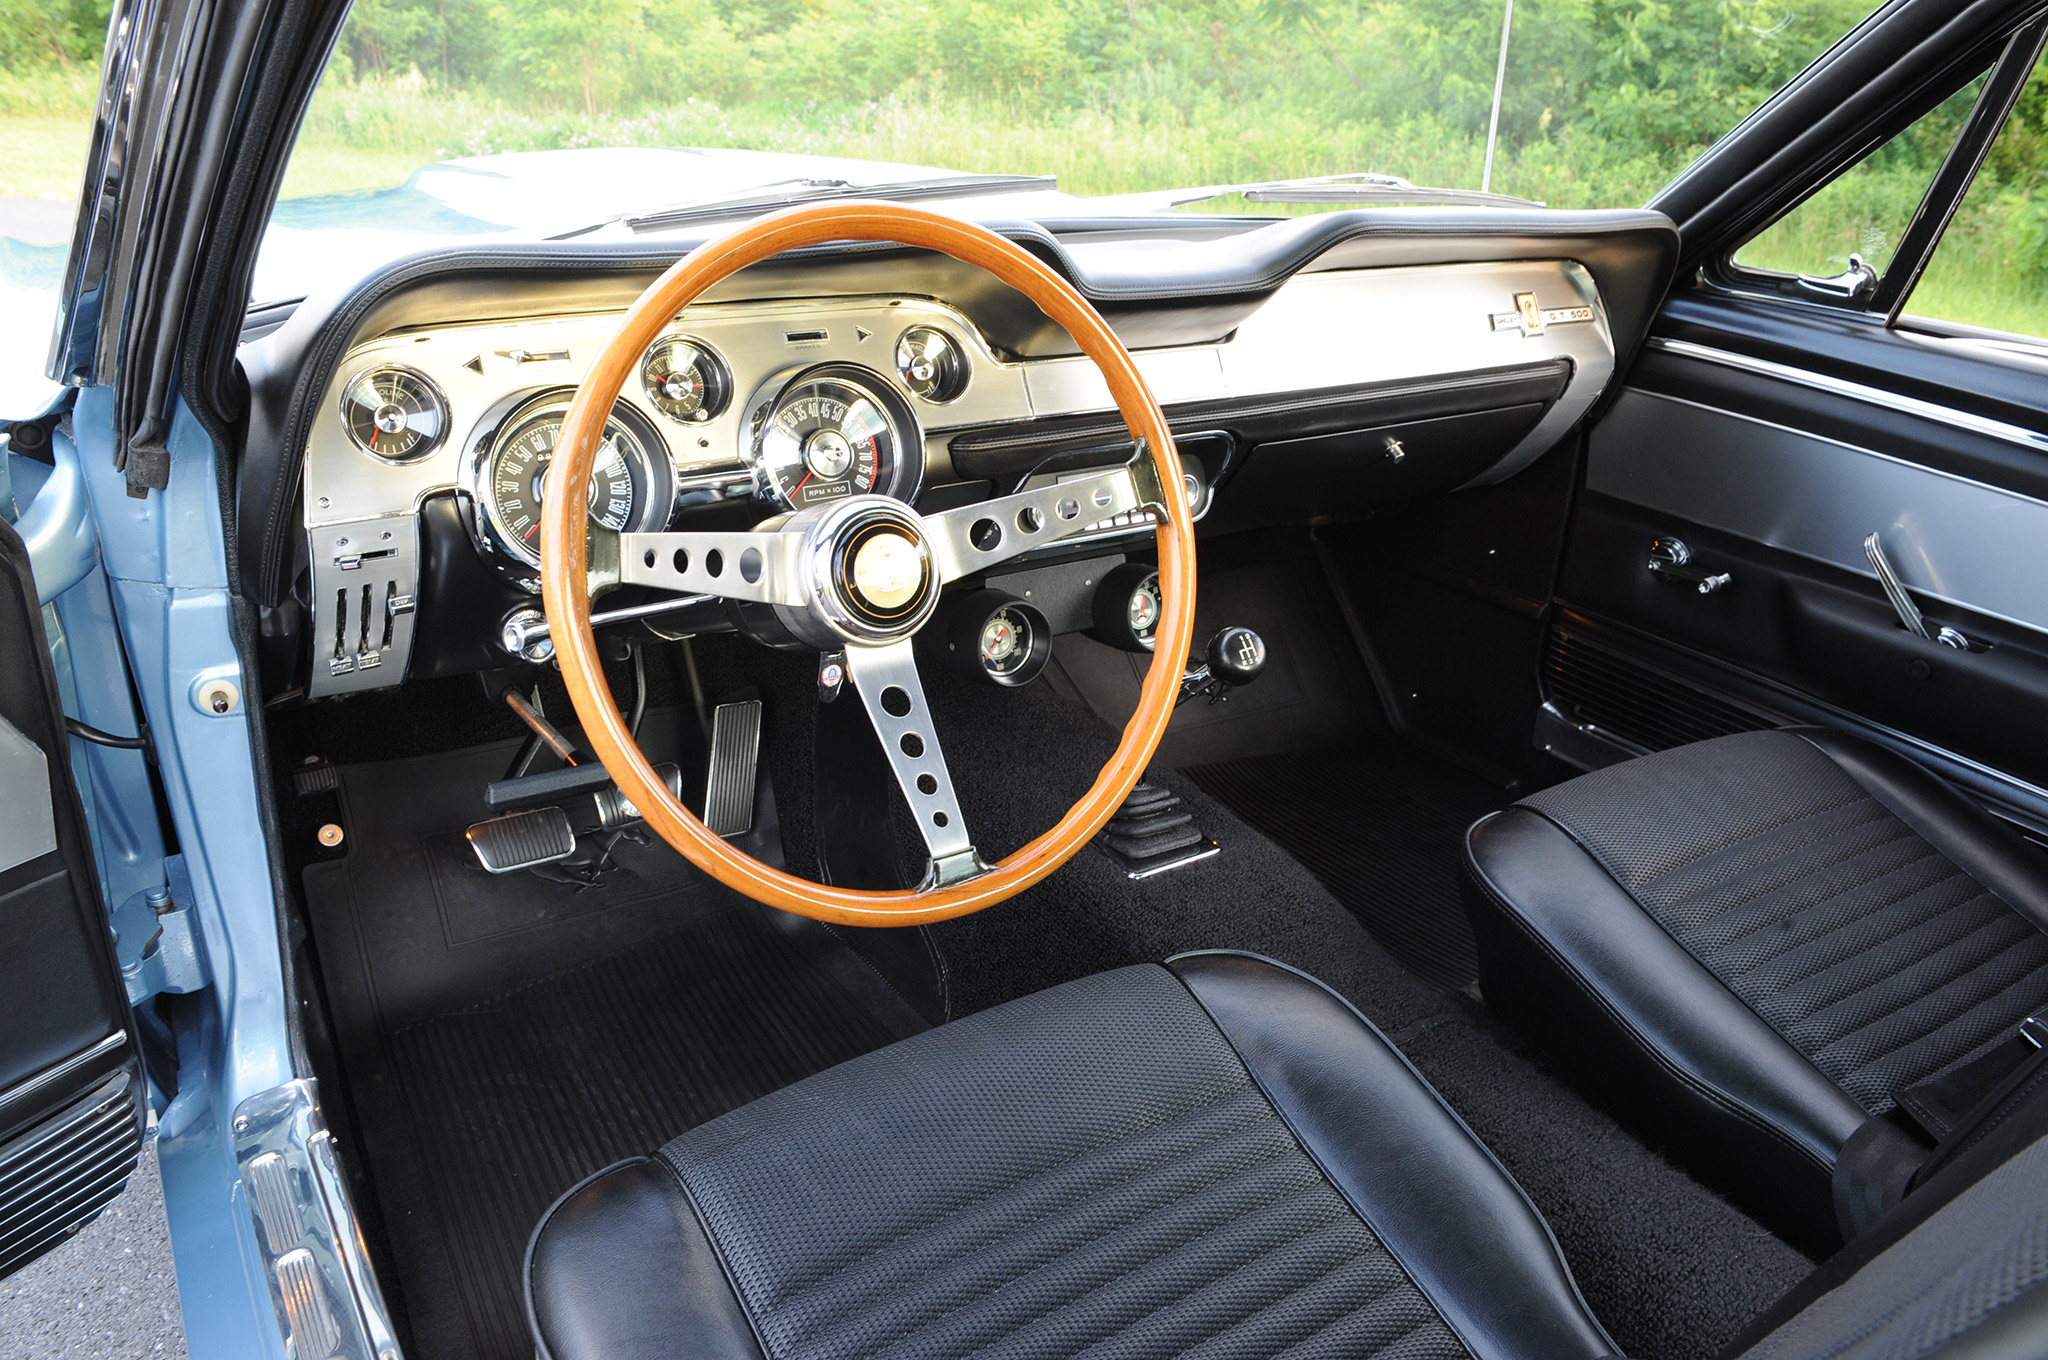 The 1967 Shelby used Stewart-Warner Green Line oil pressure and ammeter gauges mounted below the dash in a modified Rally-Pac housing. While these are original to Shawn's G.T. 500, they are now available in reproduction.